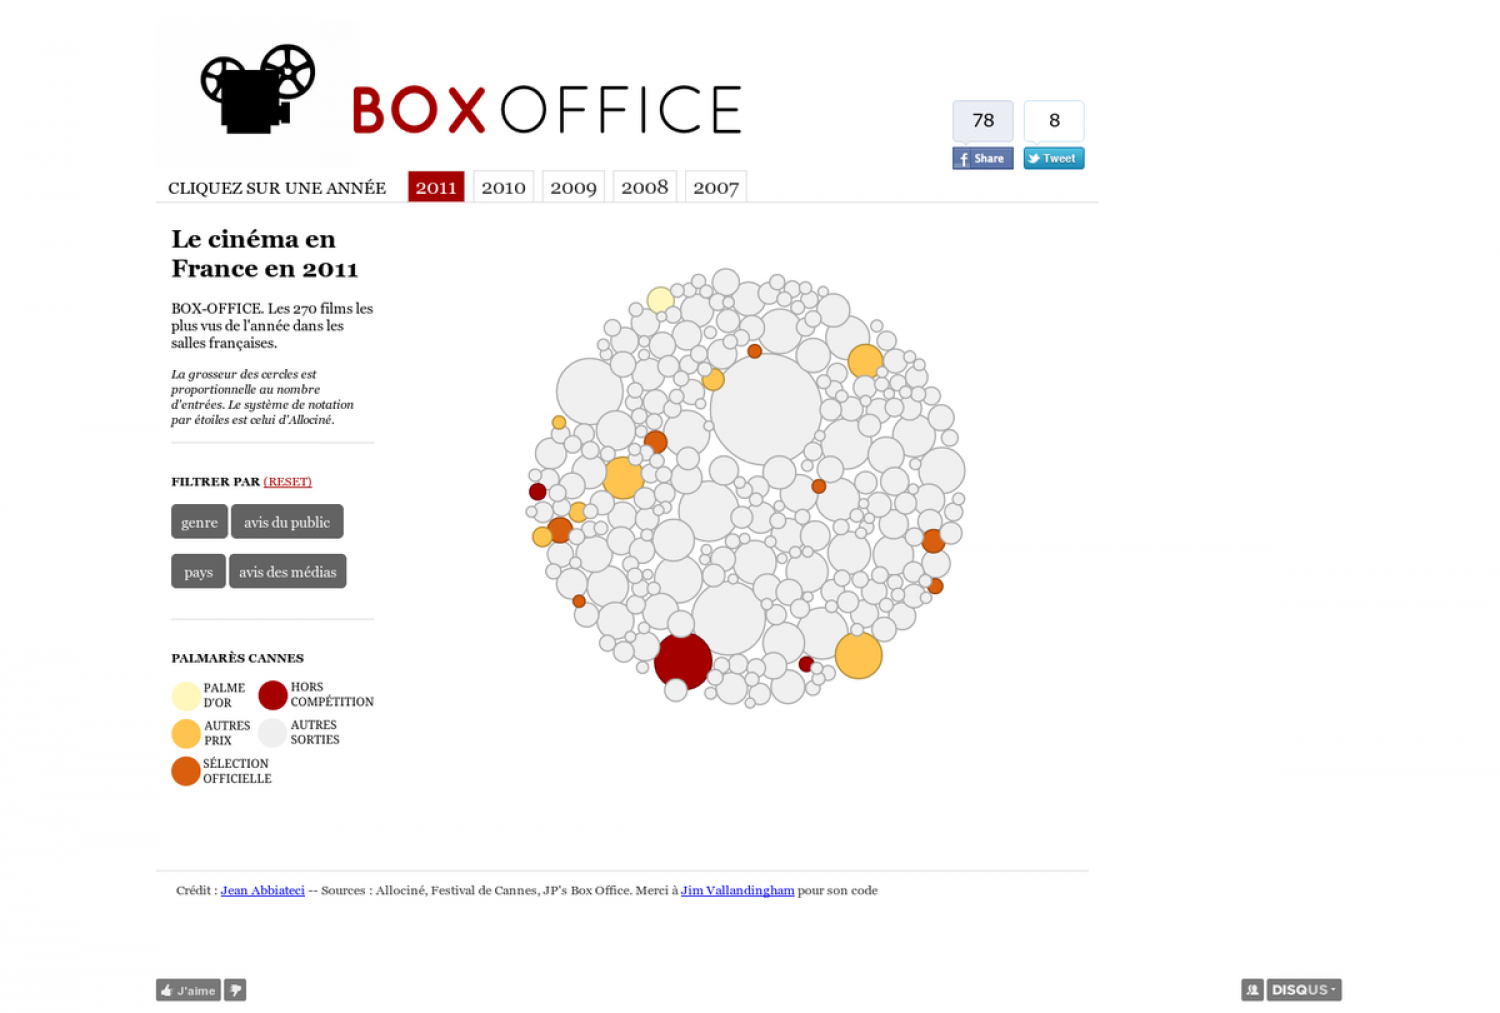 Box-office : datavisualization of french film industry (2007-2001) Infographic